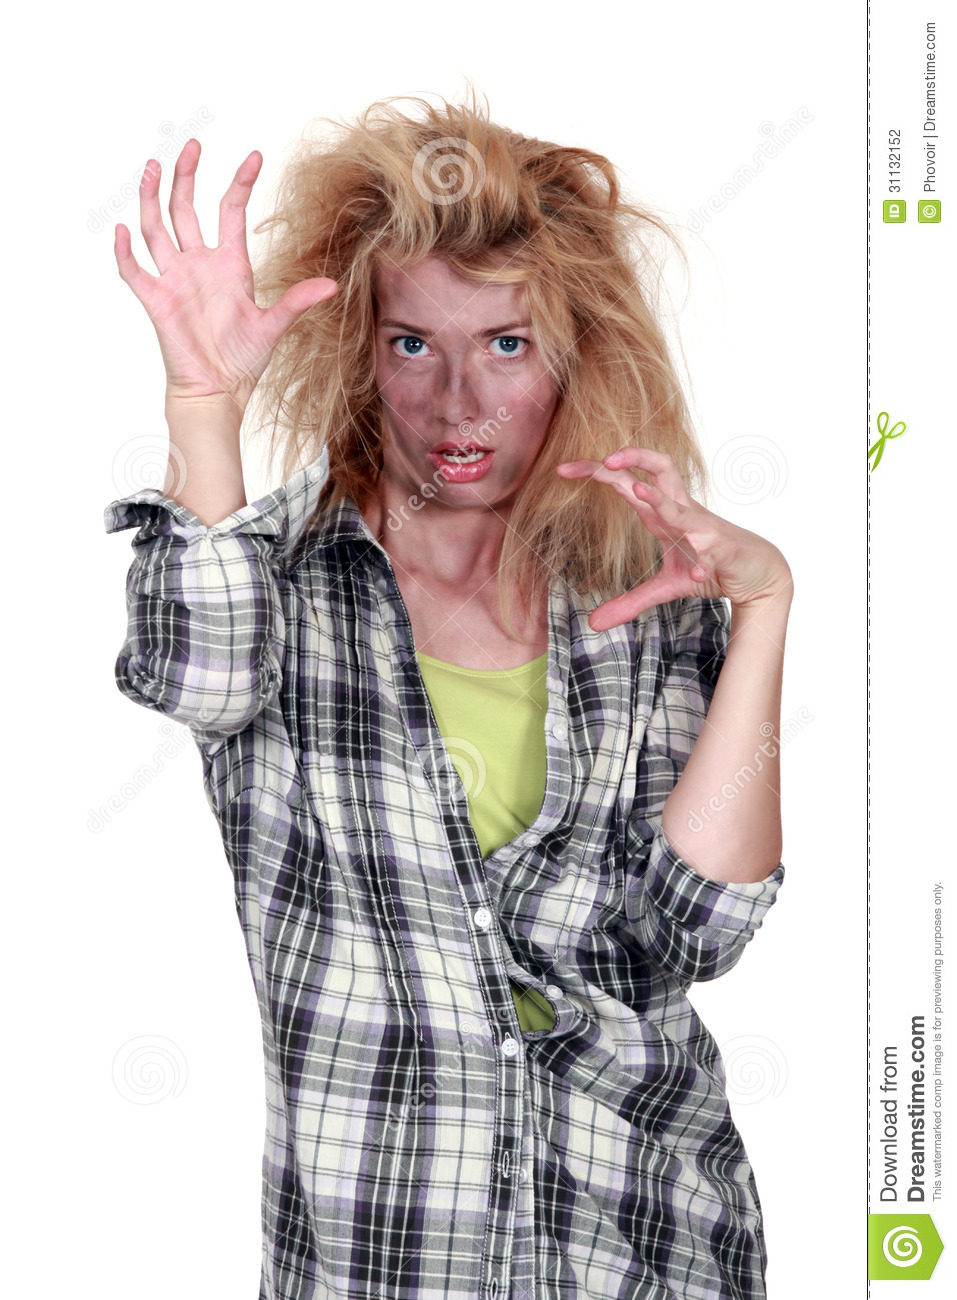 Messed Up Makeup: Zombie Girl Stock Photo. Image Of Catching, Panic, Alive